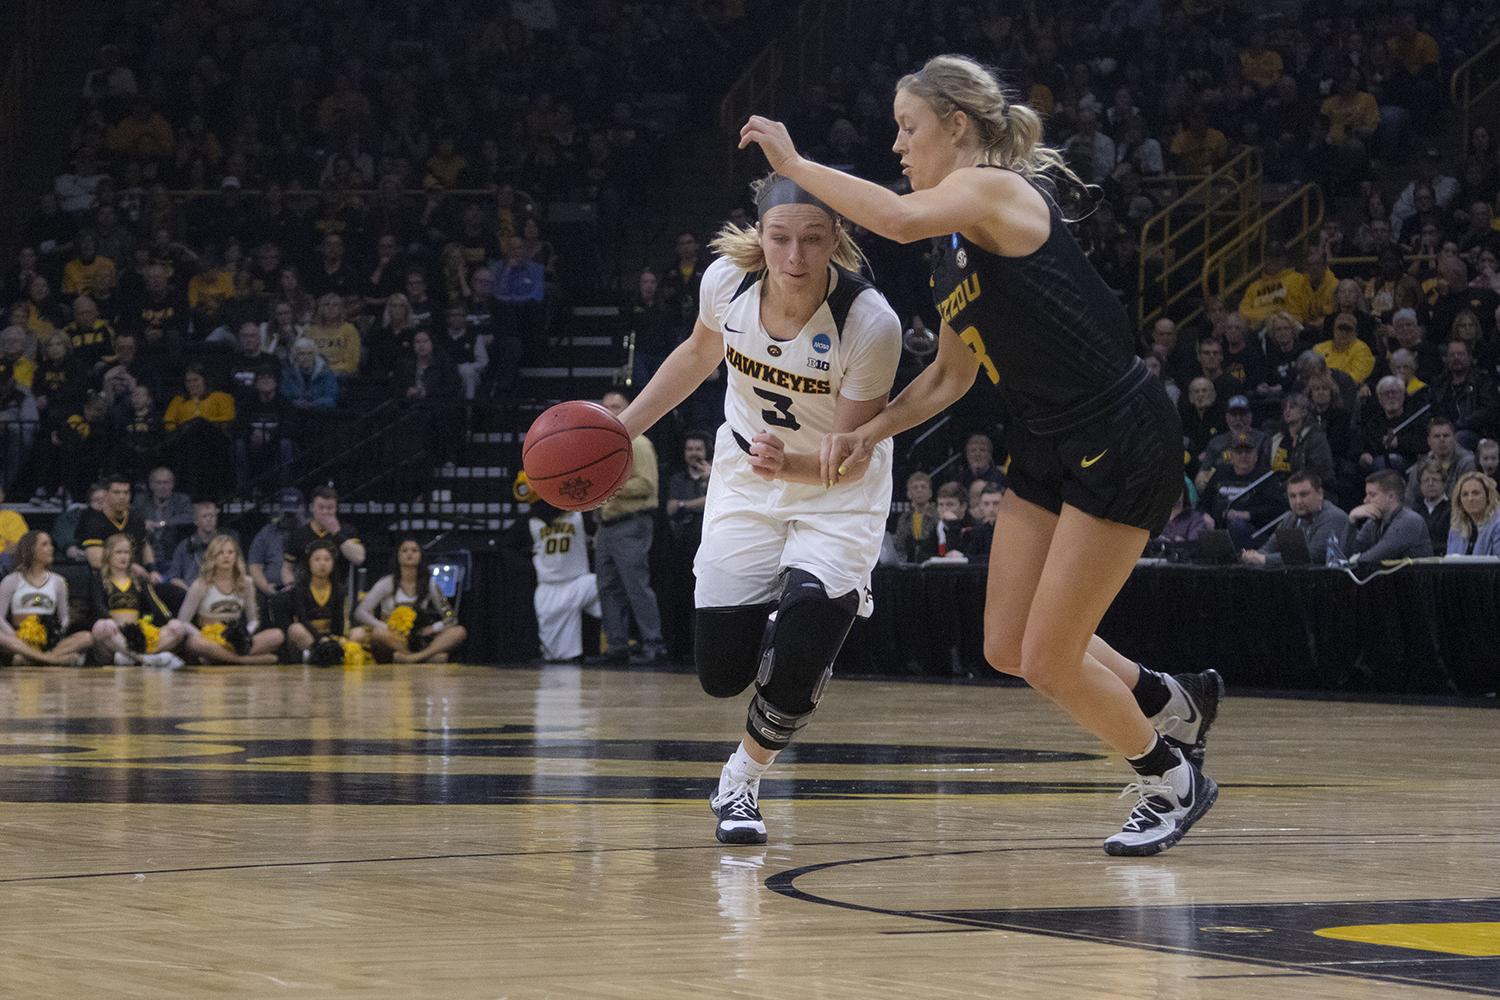 Iowa+guard+Makenzie+Meyer+drives+to+the+basket+during+the+Iowa%2FMizzou+NCAA+Tournament+second+round+women%27s+basketball+game+in+Carver-Hawkeye+Arena++on+Sunday%2C+March+24%2C+2019.+The+Hawkeyes+defeated+the+Tigers%2C+68-52.+